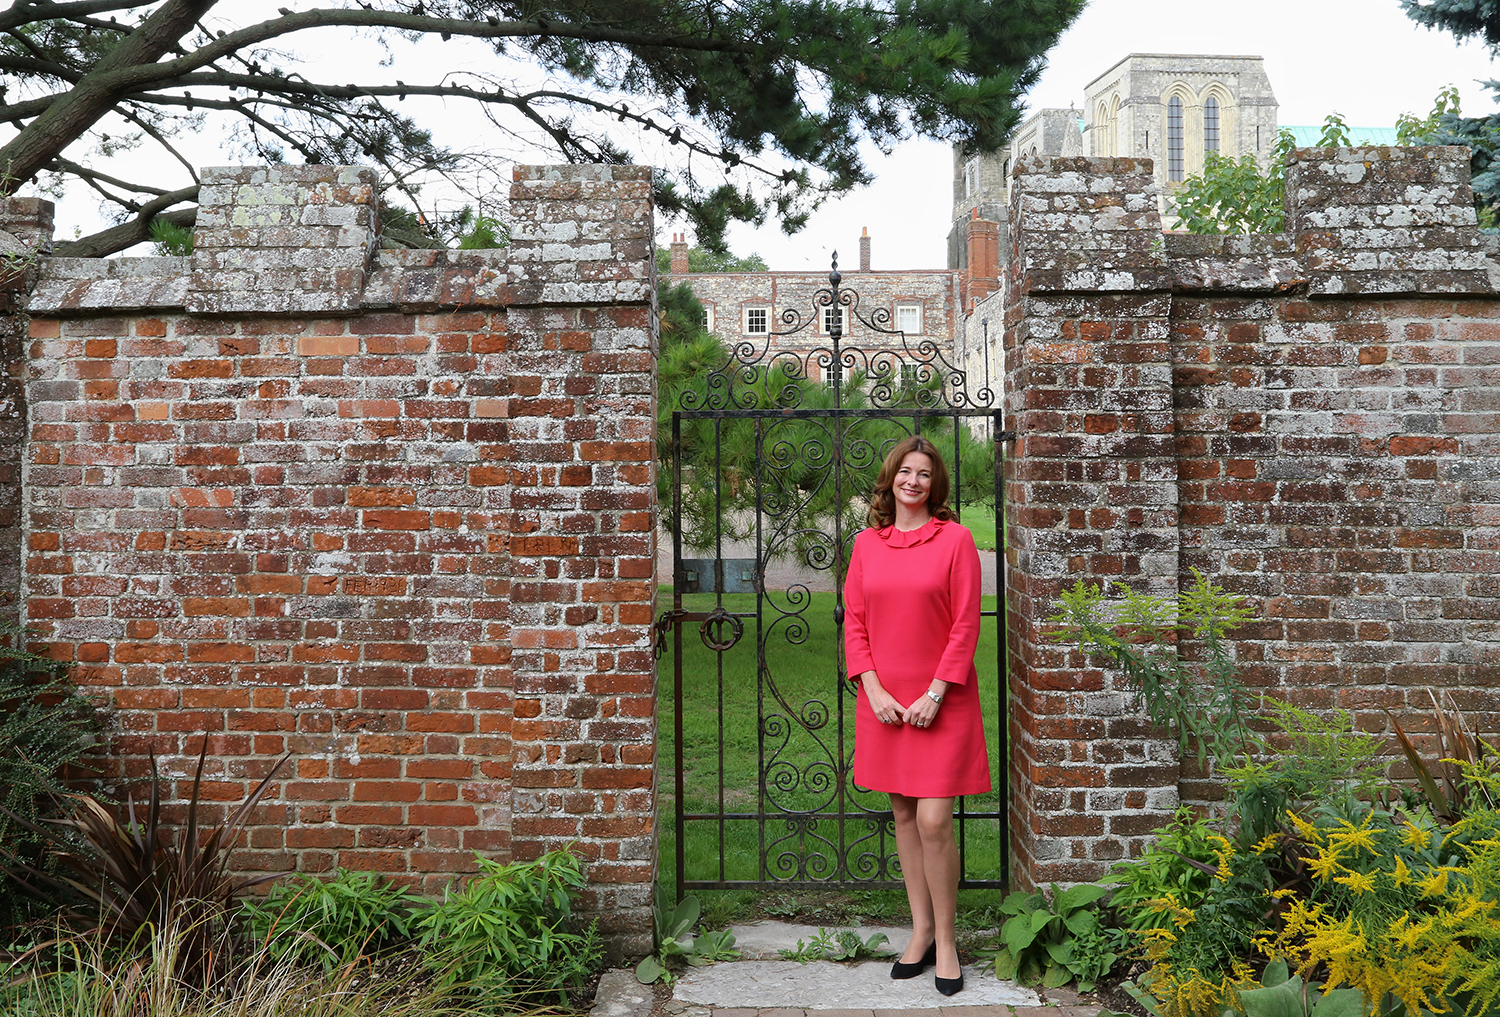 Gillian Keegan MP in Bishop Palace Gardens, Chichester with Chichester Cathedral in the background